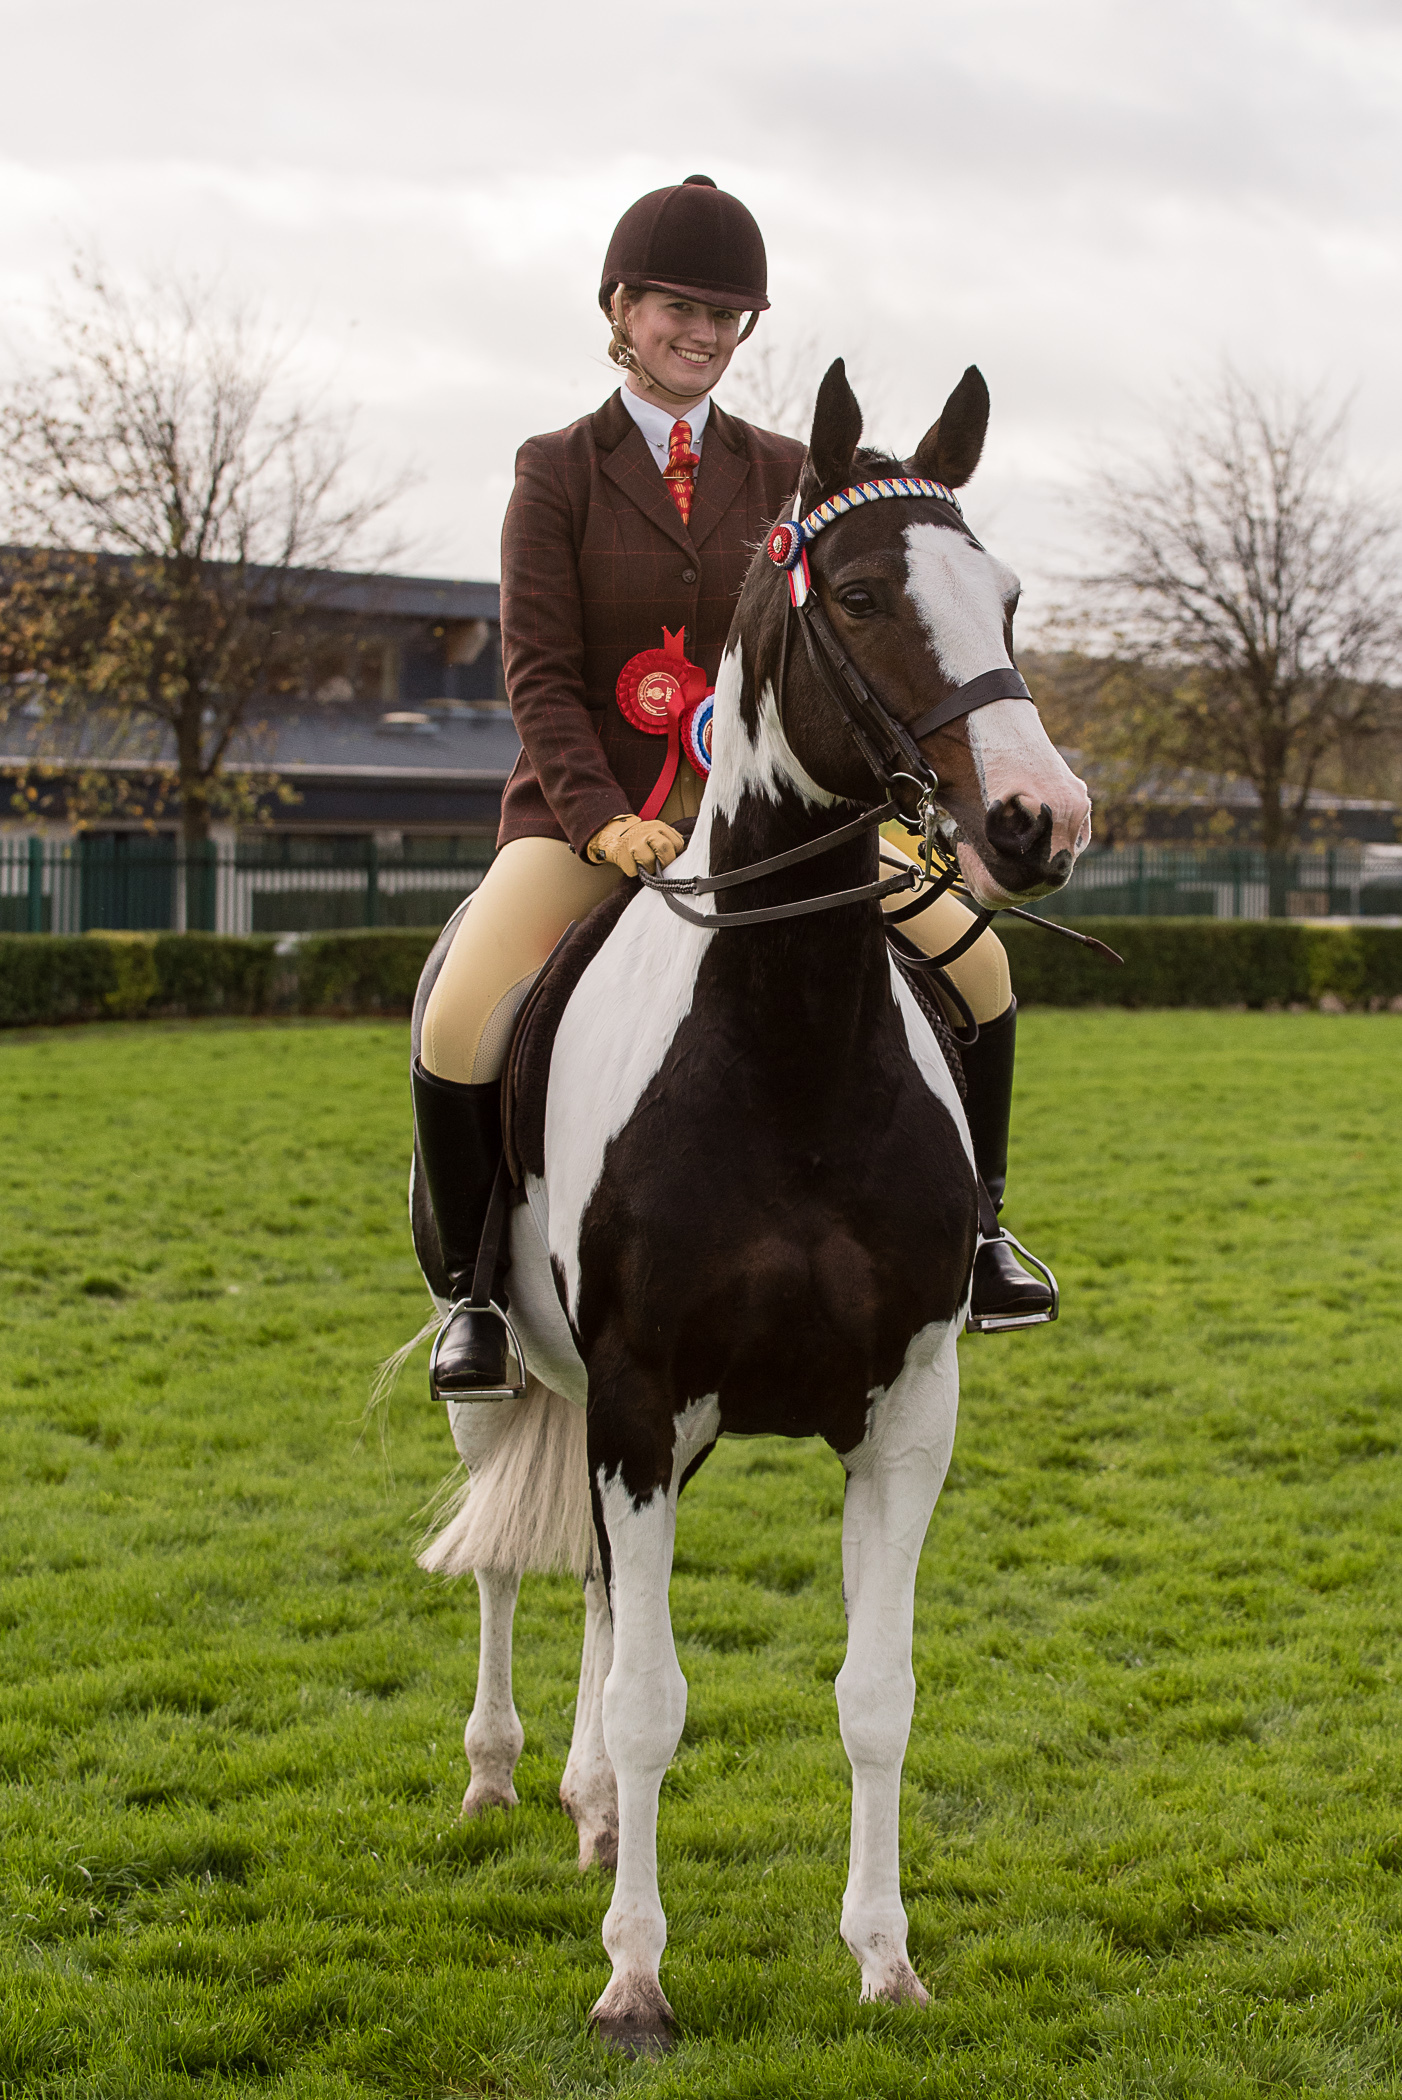 PROUD: Ridden Coloured Champion Charlotte Merrigan Martin  Photo: KATE MALLENDER - YORKSHIRE AGRICULTURAL SOCIETY